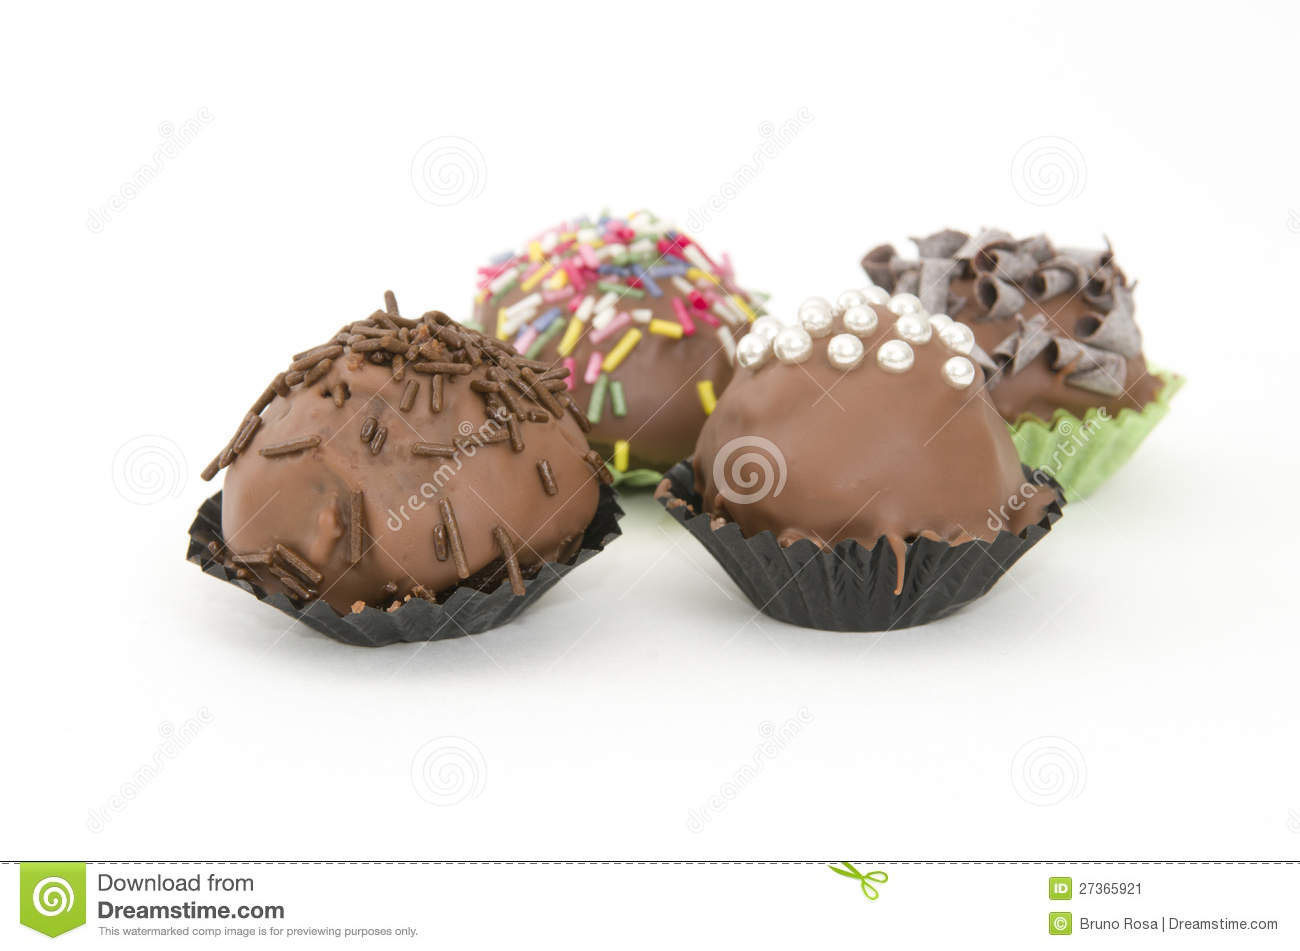 Homemade Cakepops With Chocolate Sprinkles Stock Image - Image ...